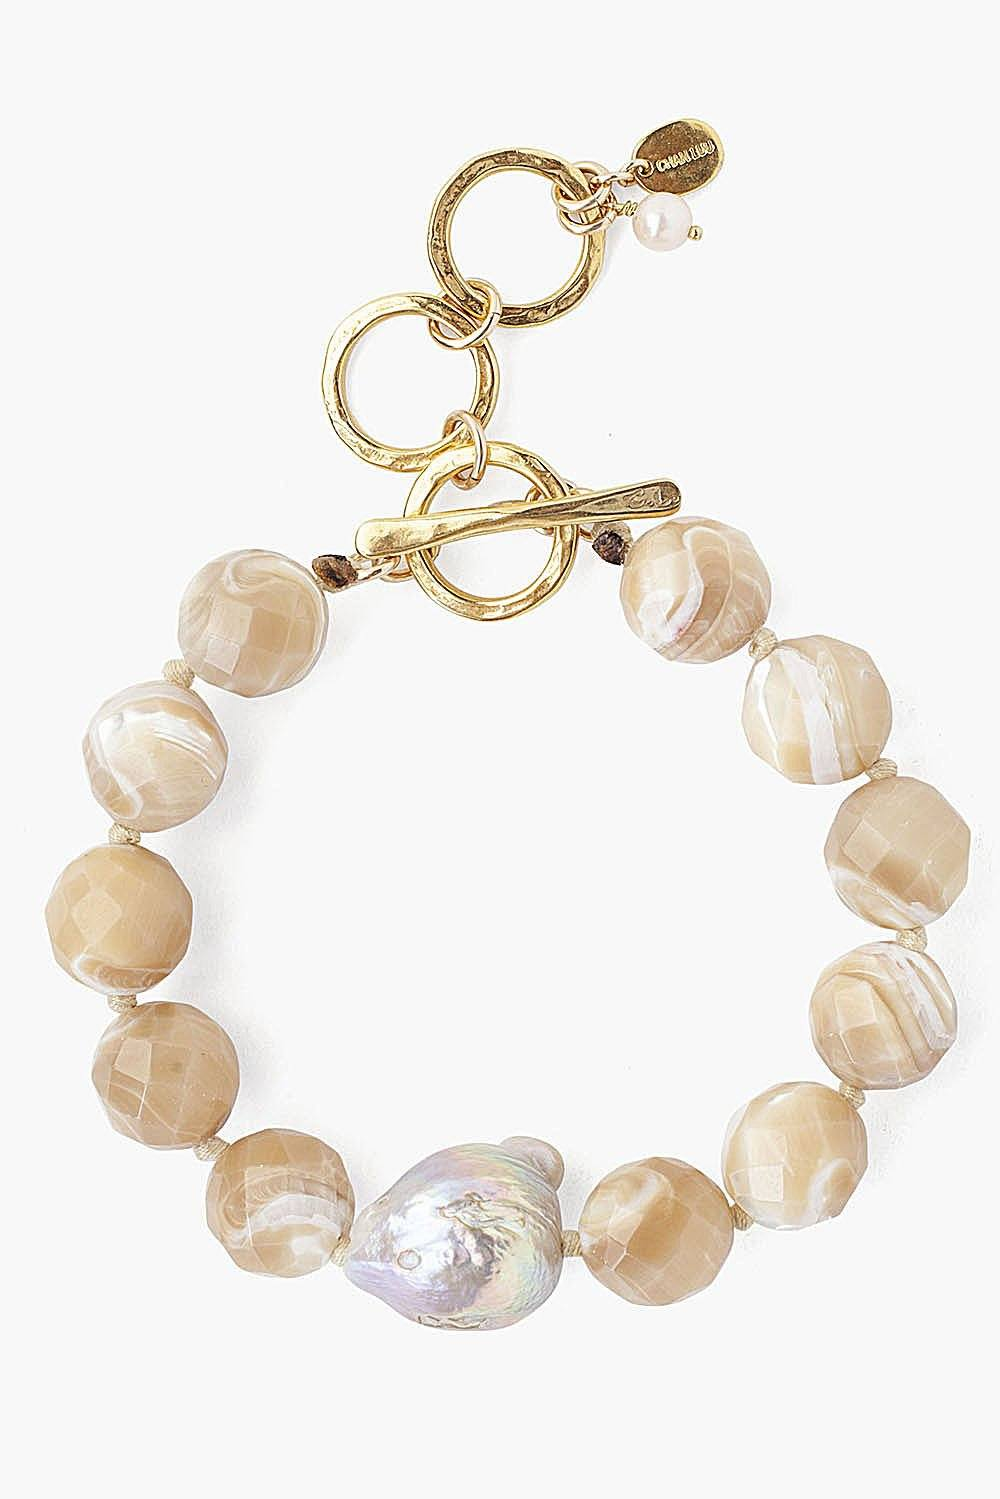 Natural Mother of Pearl and Natural Pink Baroque Pearl Bracelet